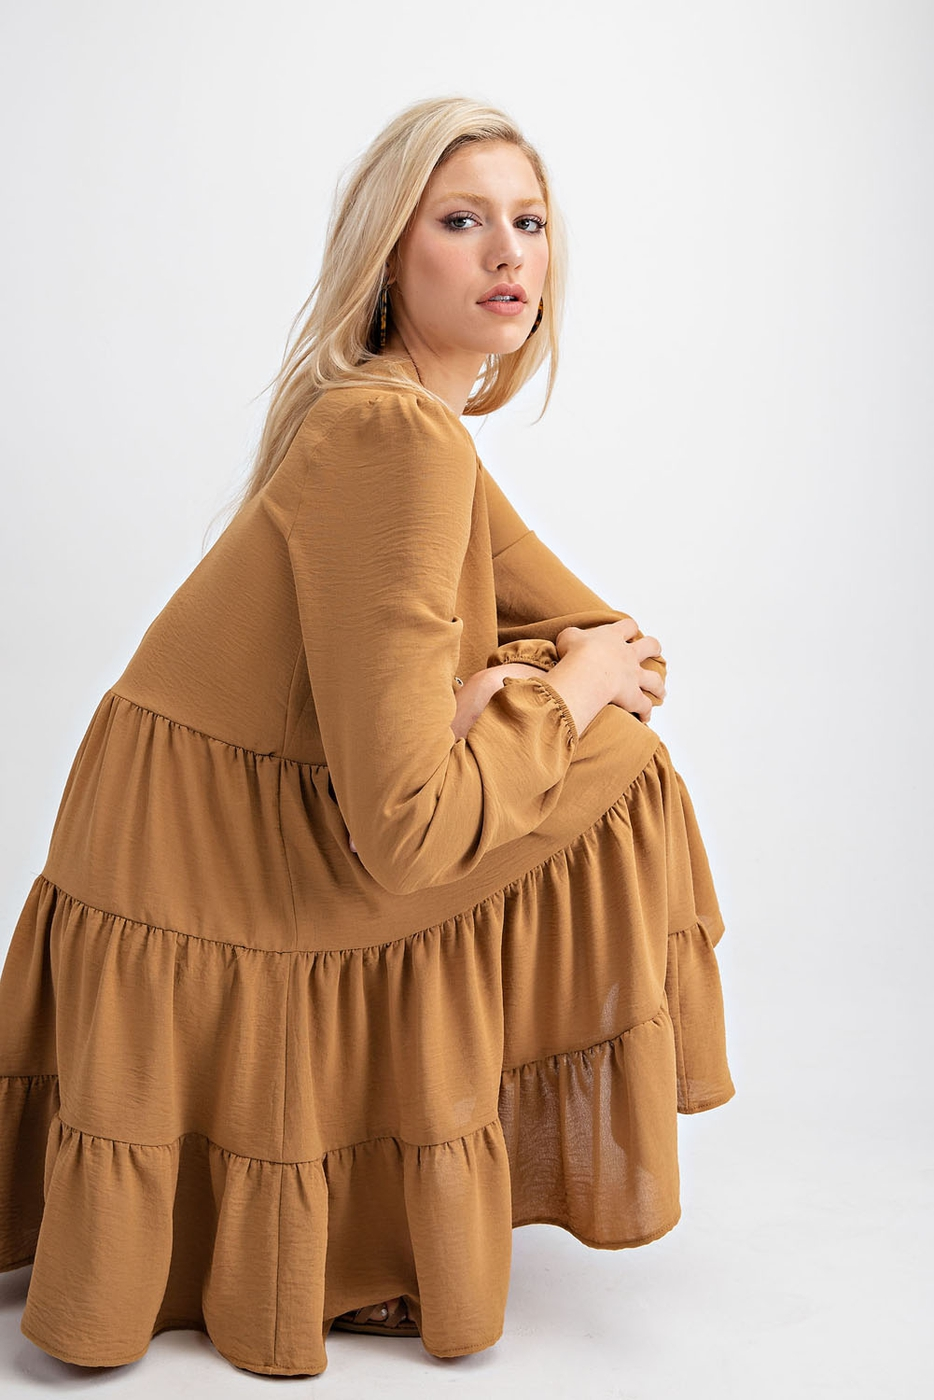 LONG SLEEVE TIERED SWING DRESS - orangeshine.com